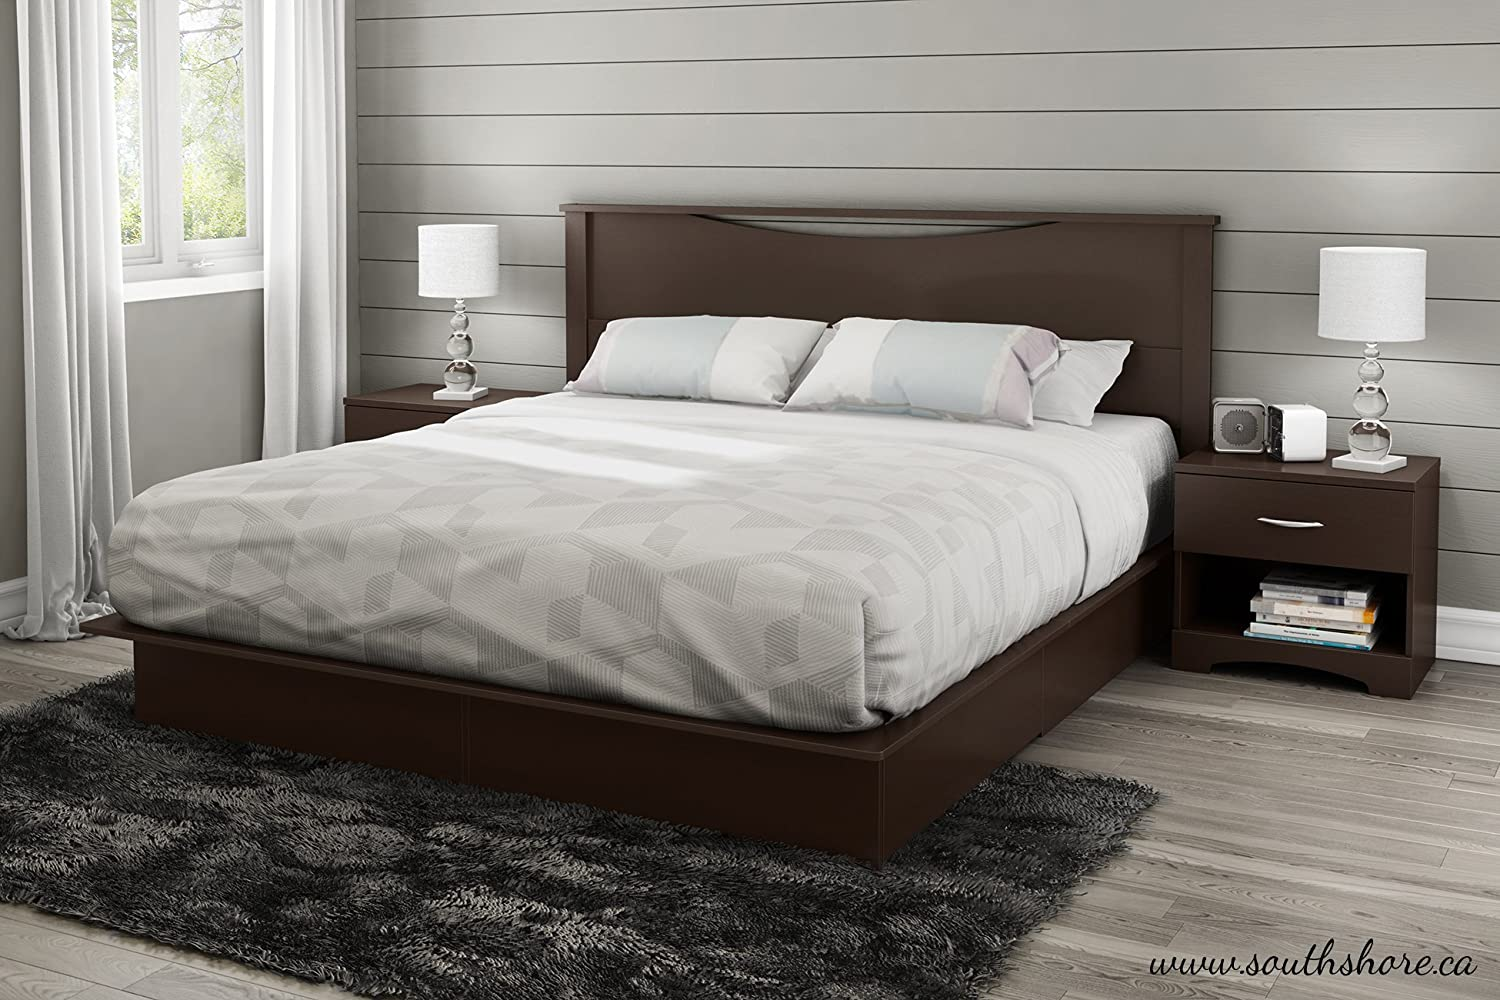 amazoncom south shore step one platform bed with drawers king chocolate kitchen u0026 dining